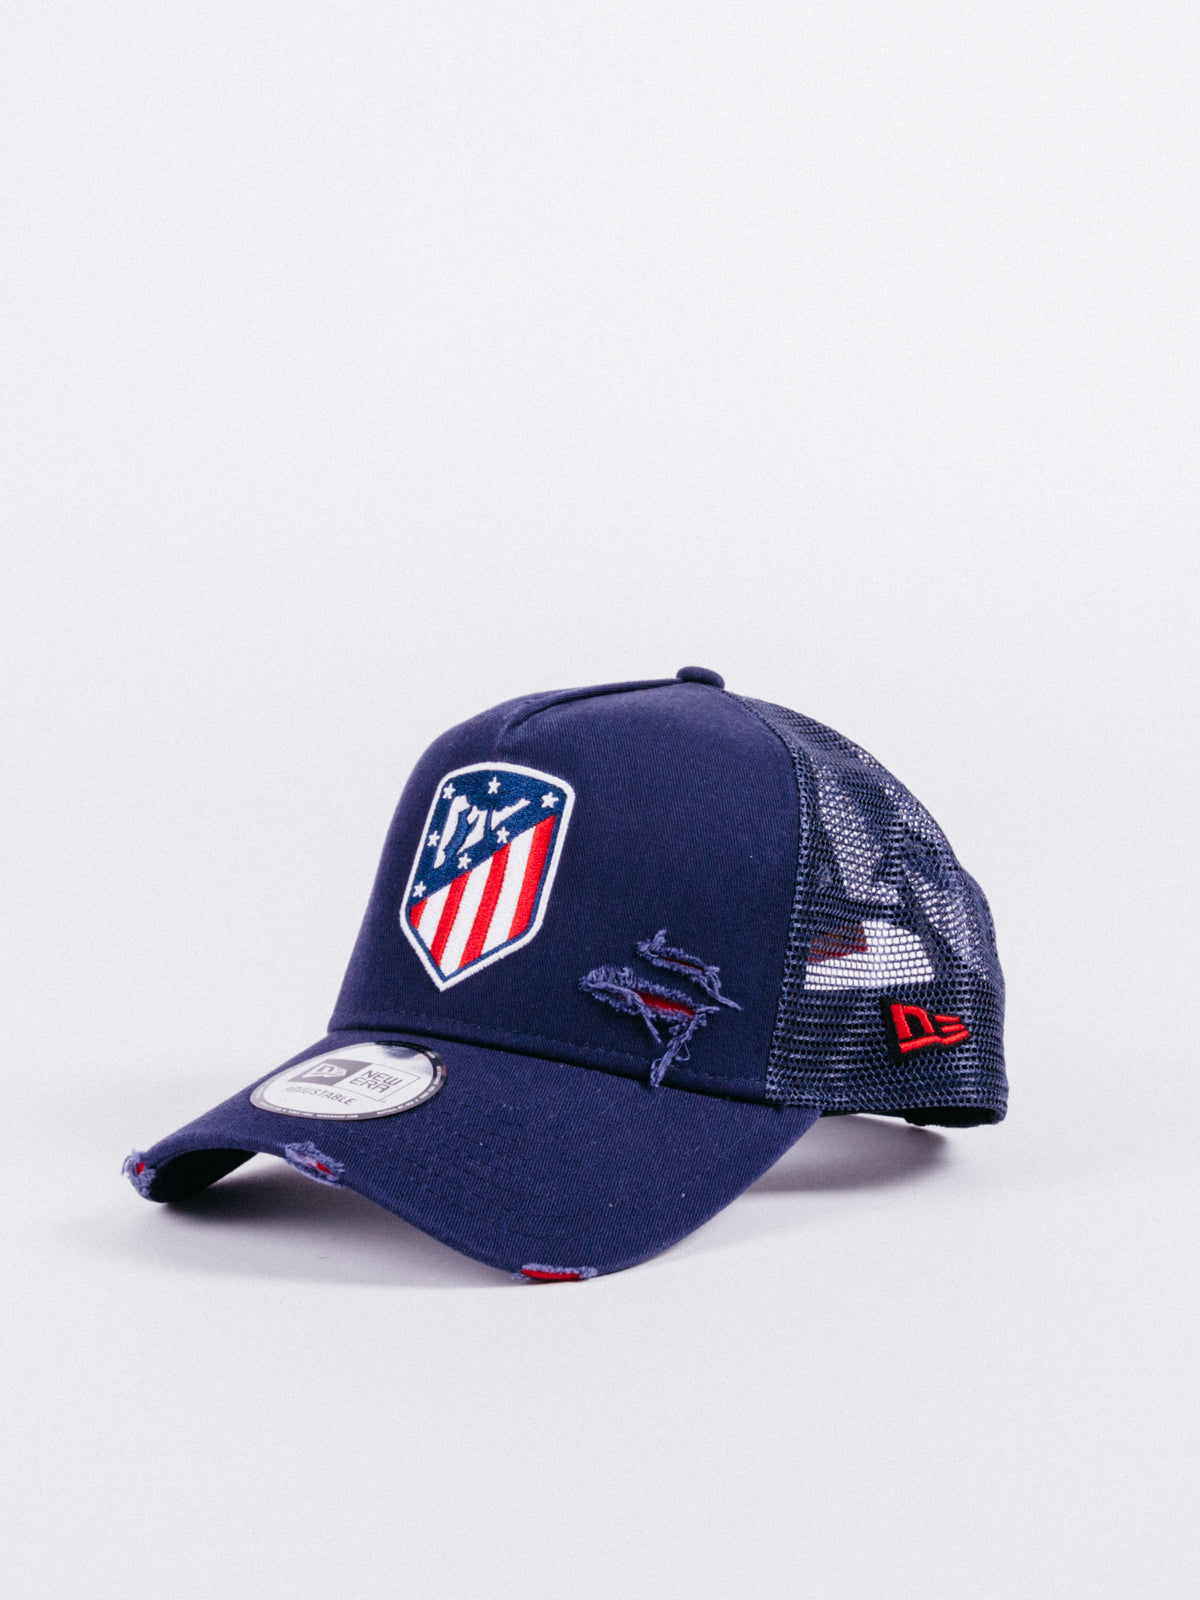 x Atlético de Madrid Distressed Adjustable Trucker Navy